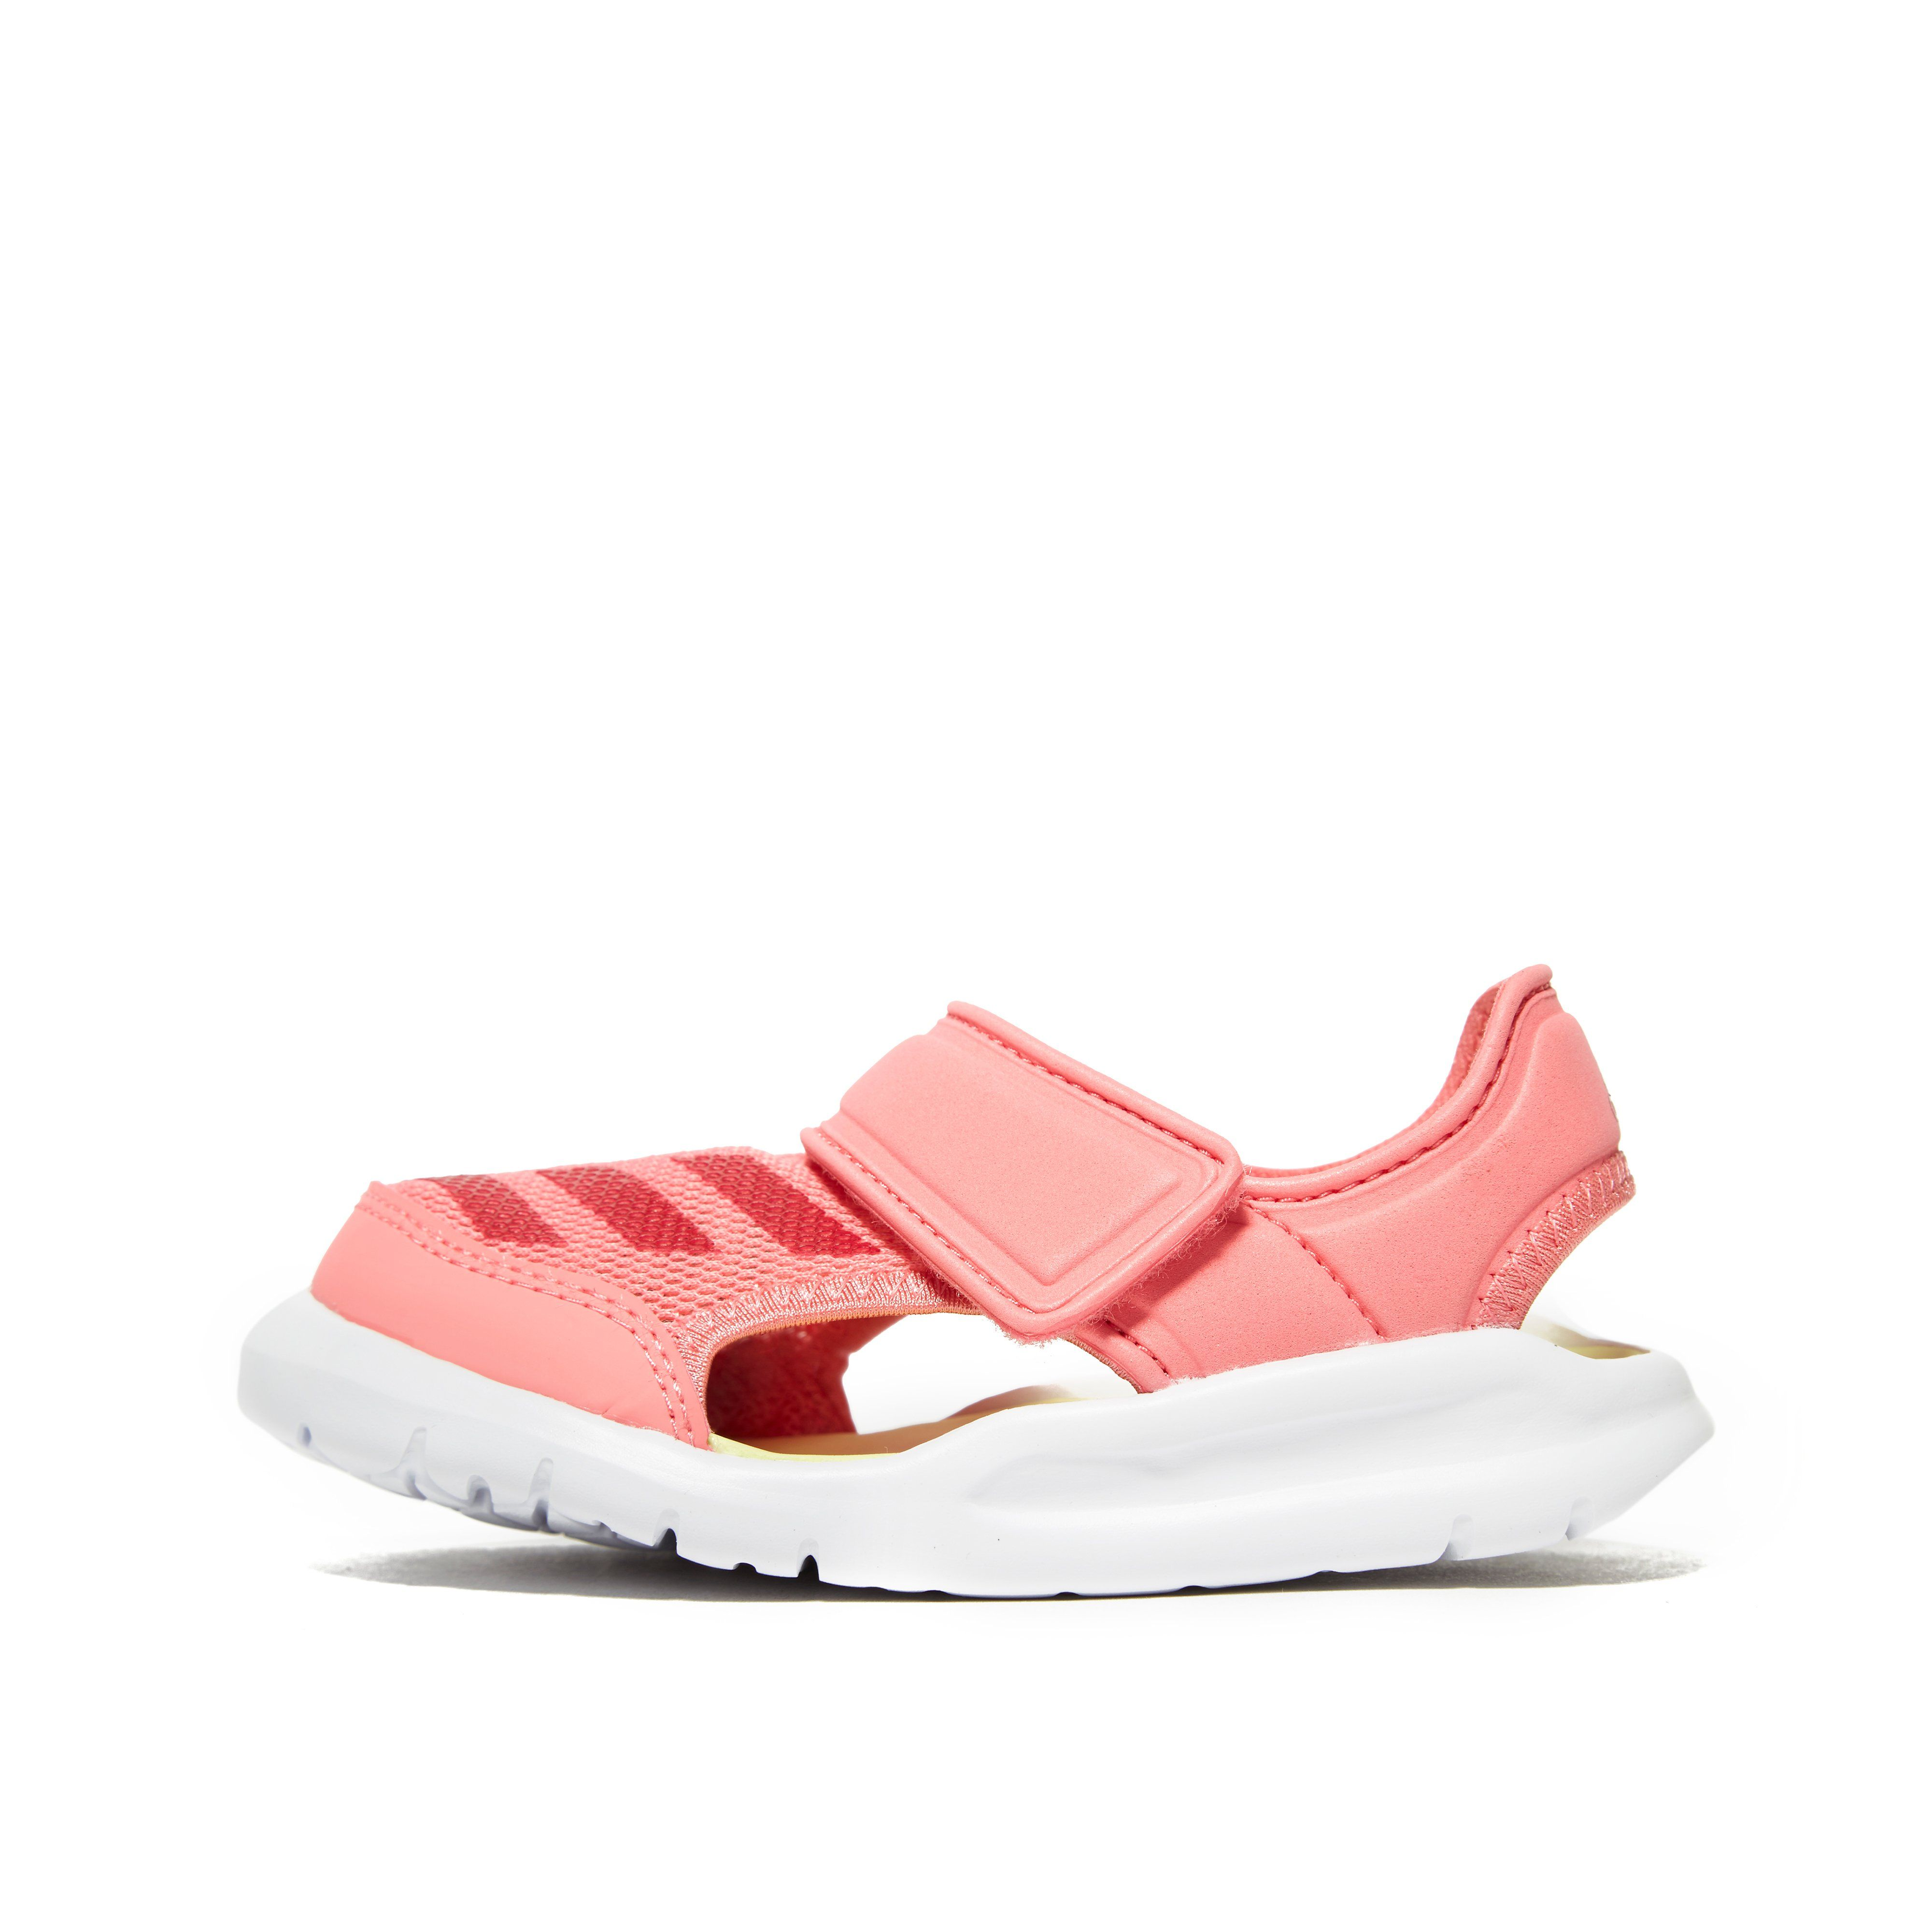 factory price 231fd 4c9e0 adidas FortaSwim Sandals Infant | JD Sports Ireland